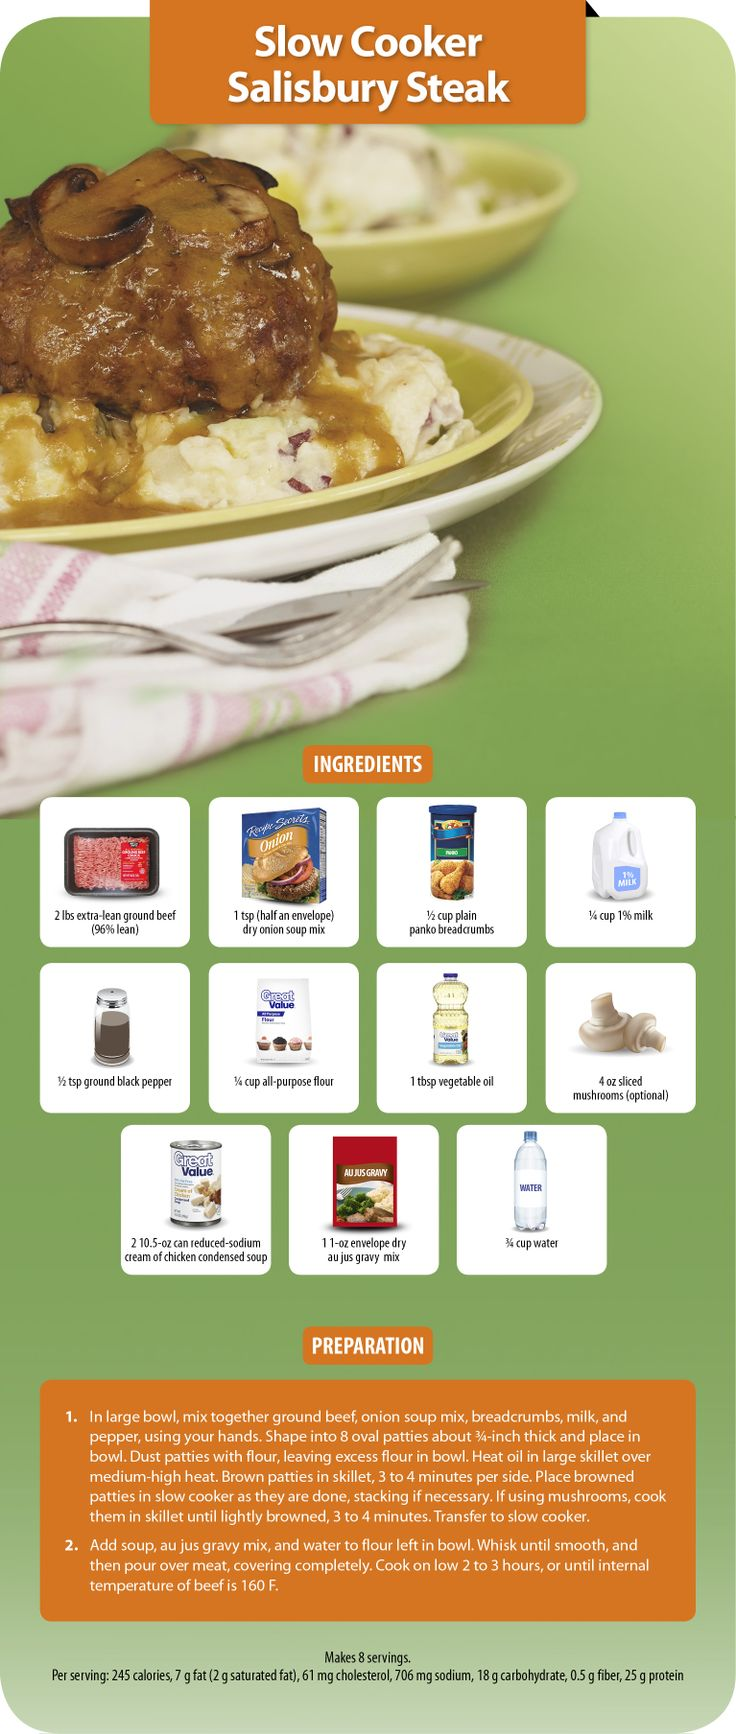 82 best Associate Recipes images on Pinterest | Business, Store and ...